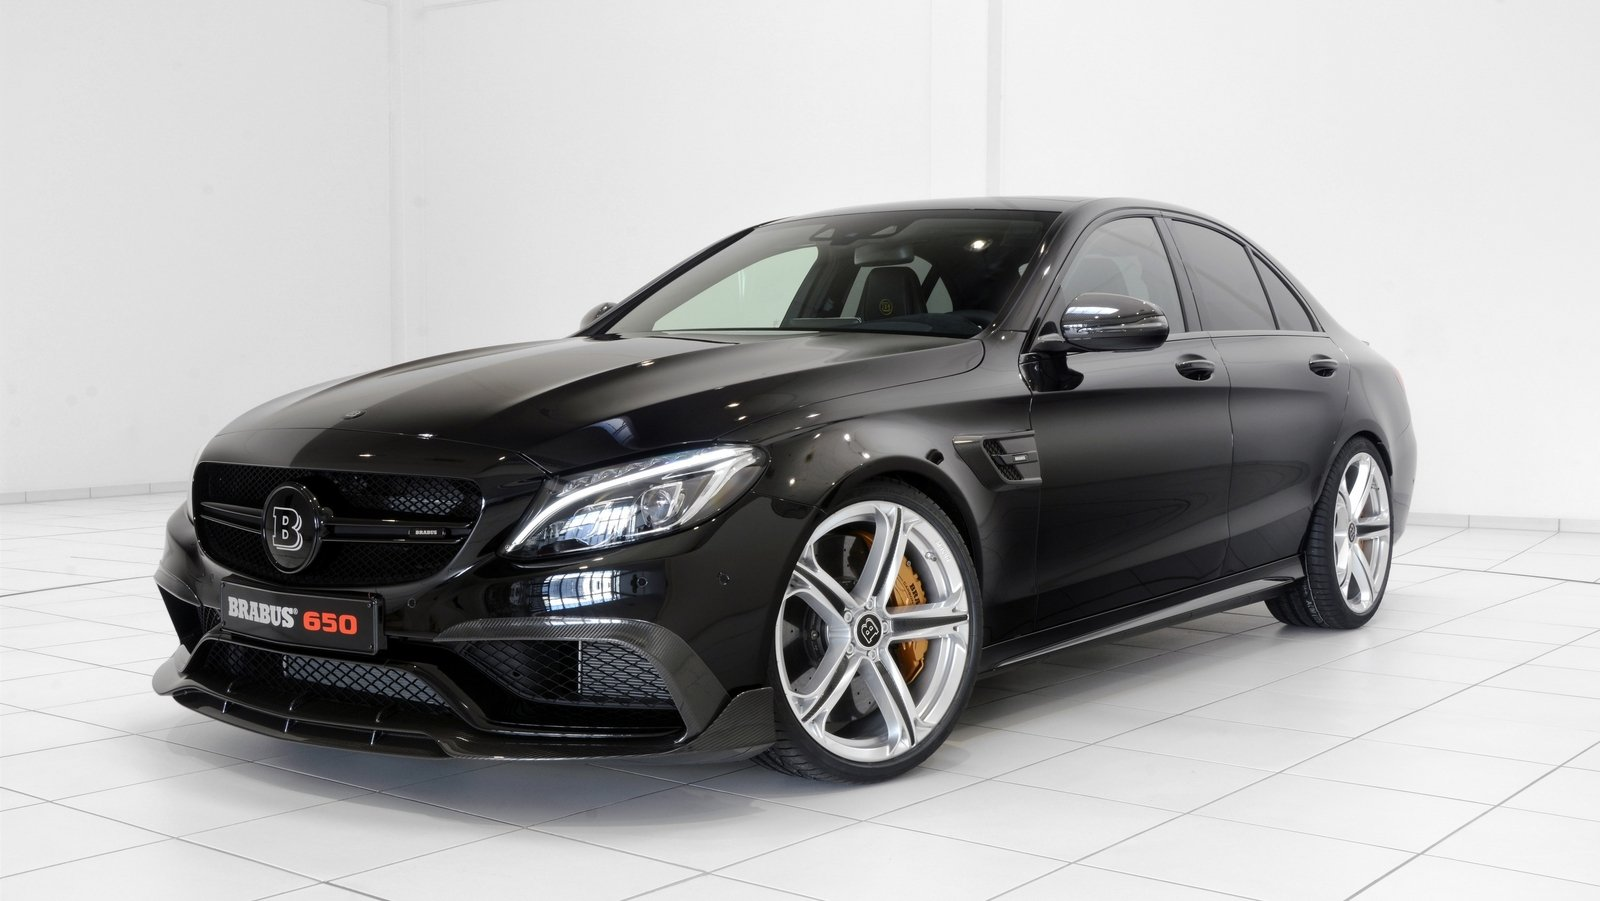 2016 mercedes amg c63 s by brabus picture 667288 car review top speed. Black Bedroom Furniture Sets. Home Design Ideas